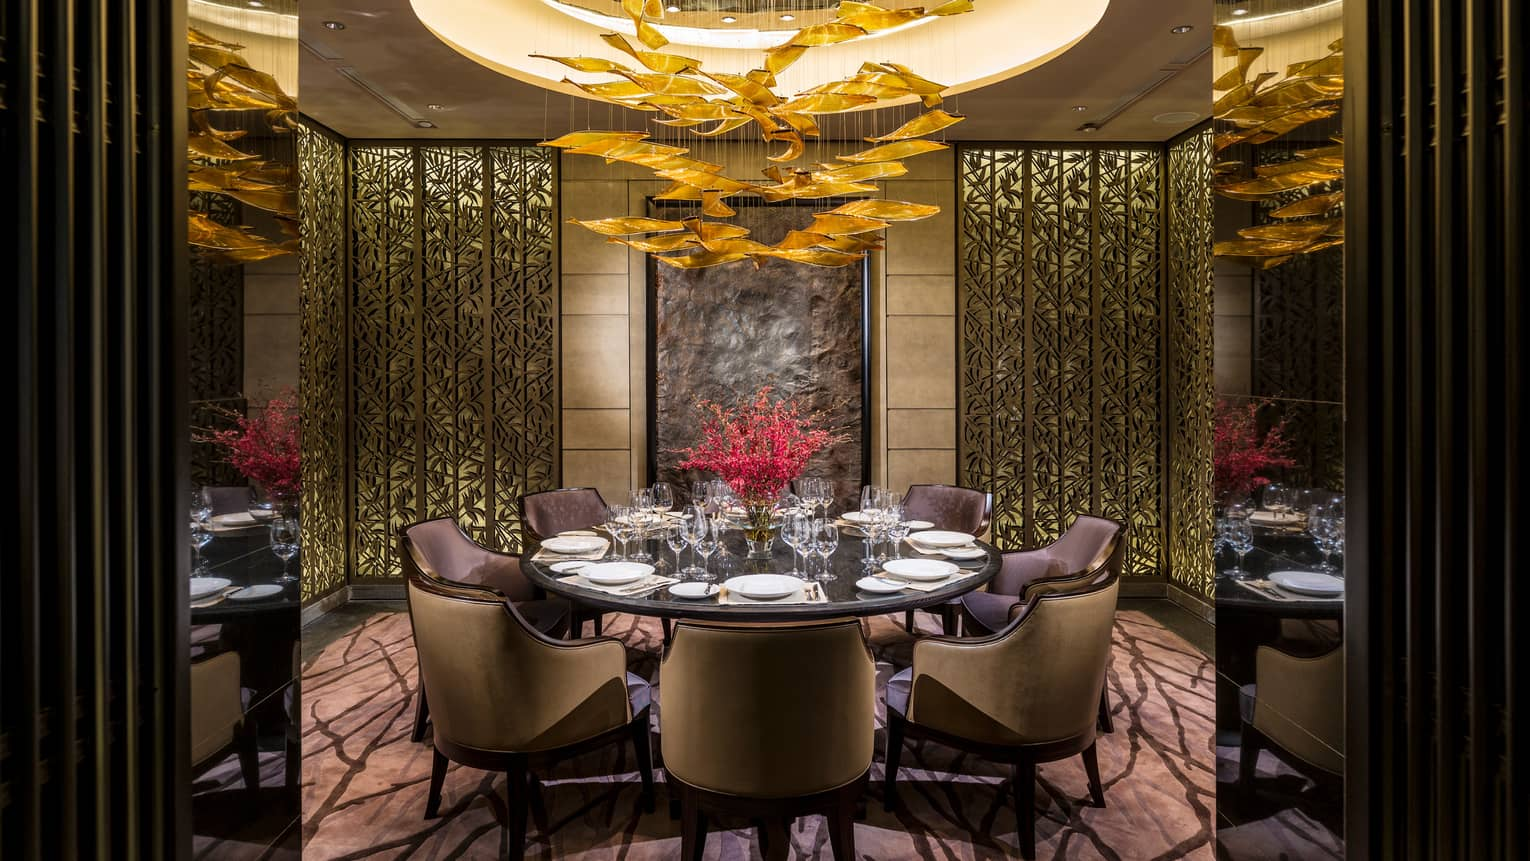 Foo restaurant round dining table in private alcove with decorative gold screens, modern chandelier